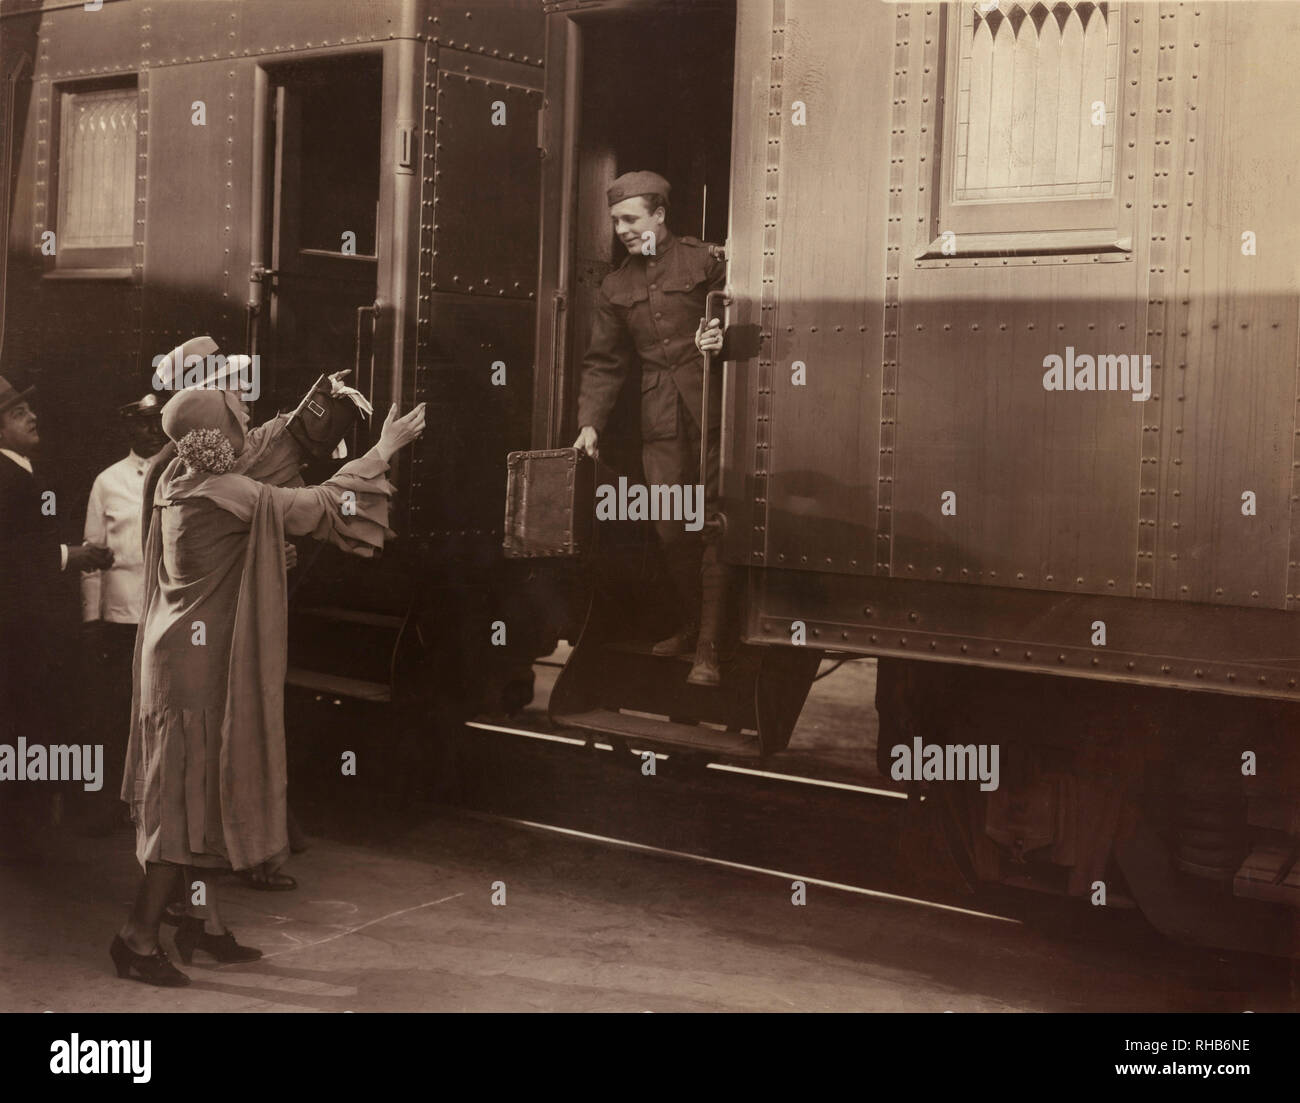 Russell Hardie (on train), on-set of the Film, 'In Old Kentucky', MGM, 1935 - Stock Image